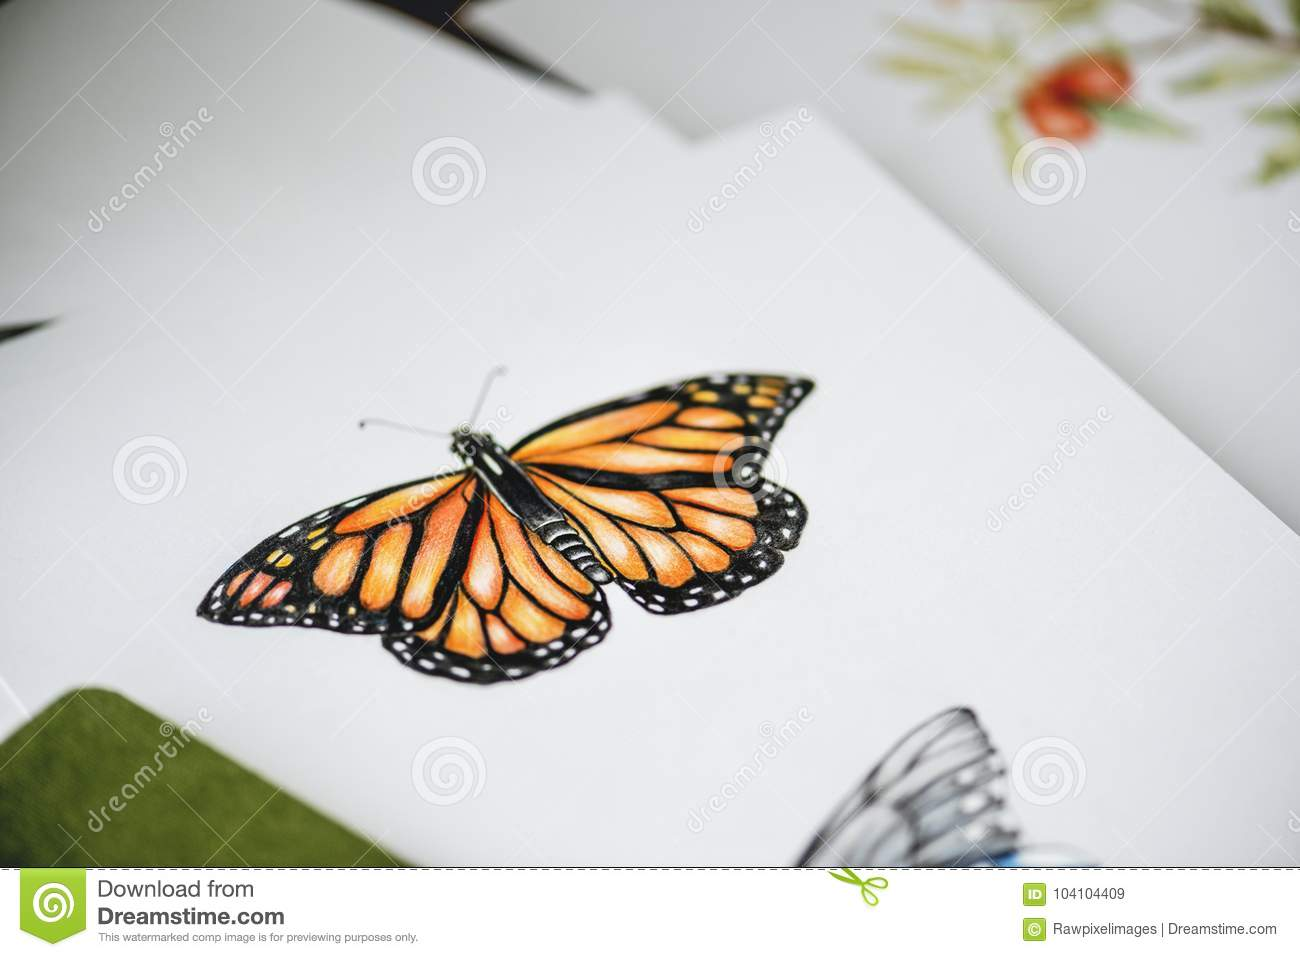 Drawing of butterfly on white paper